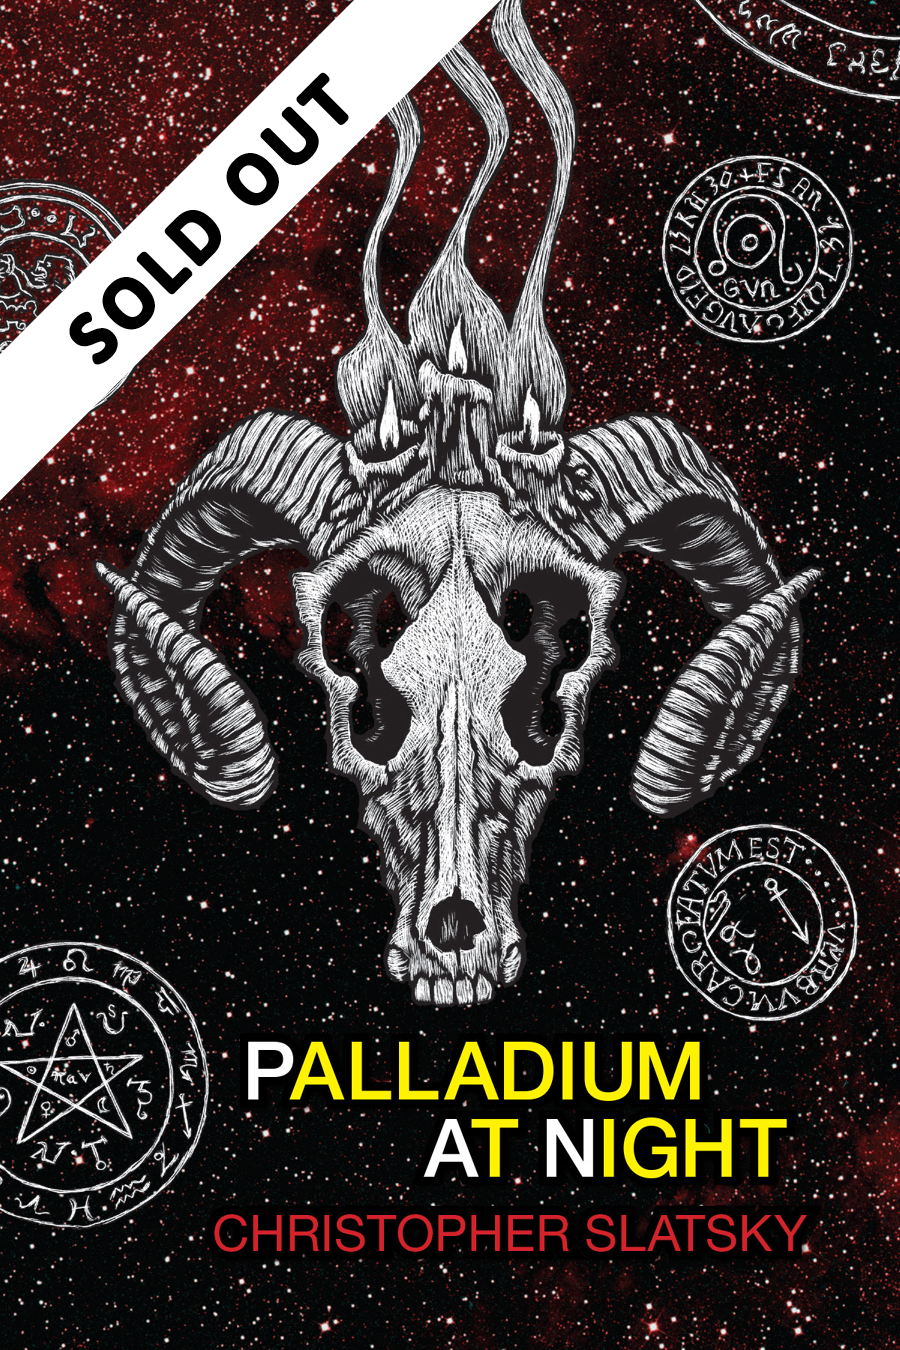 Image of Palladium at Night (Christopher Slatsky)